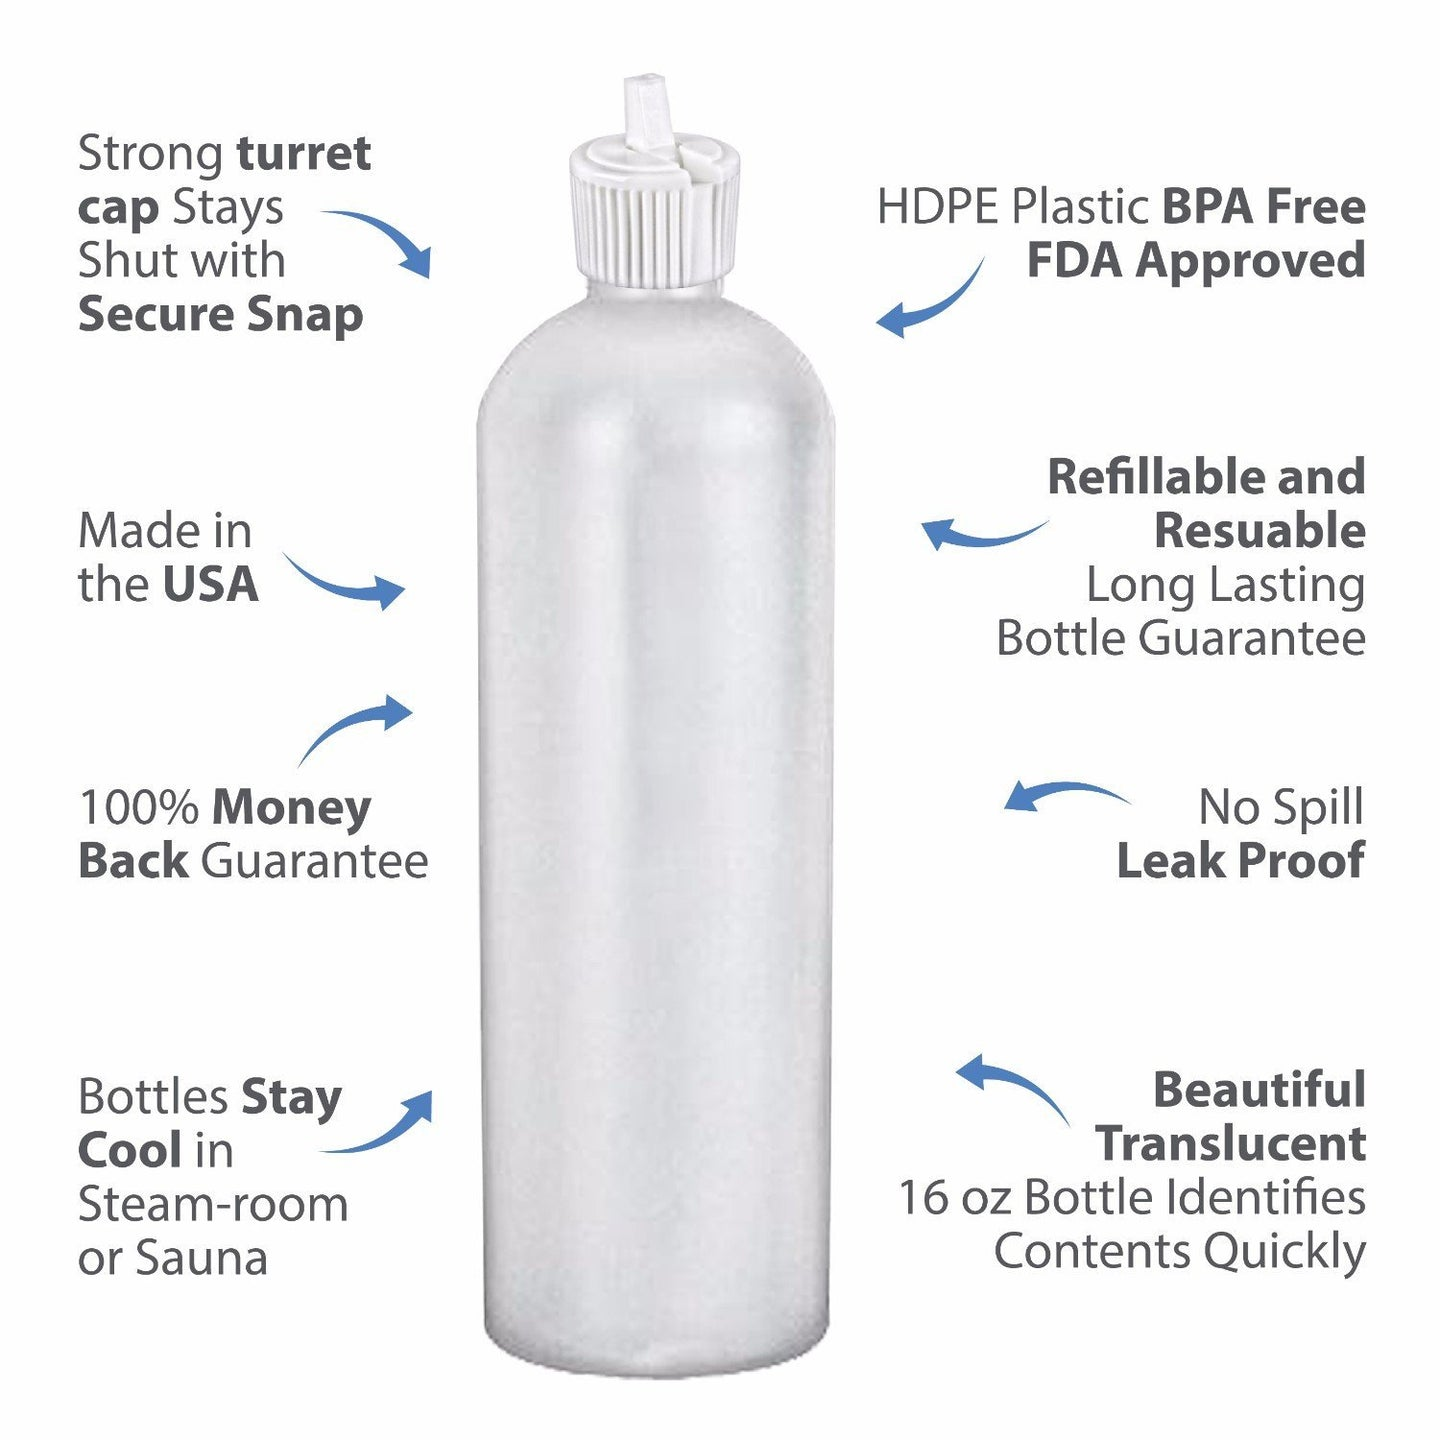 MoYo Natural Labs 16 oz Squirt Bottles, Squeezable Refillable Containers Turret Caps, BPA Free HDPE Plastic for Essential Oils and Liquids, Toiletry/Cosmetic Bottles (Pack of 12, Translucent White)